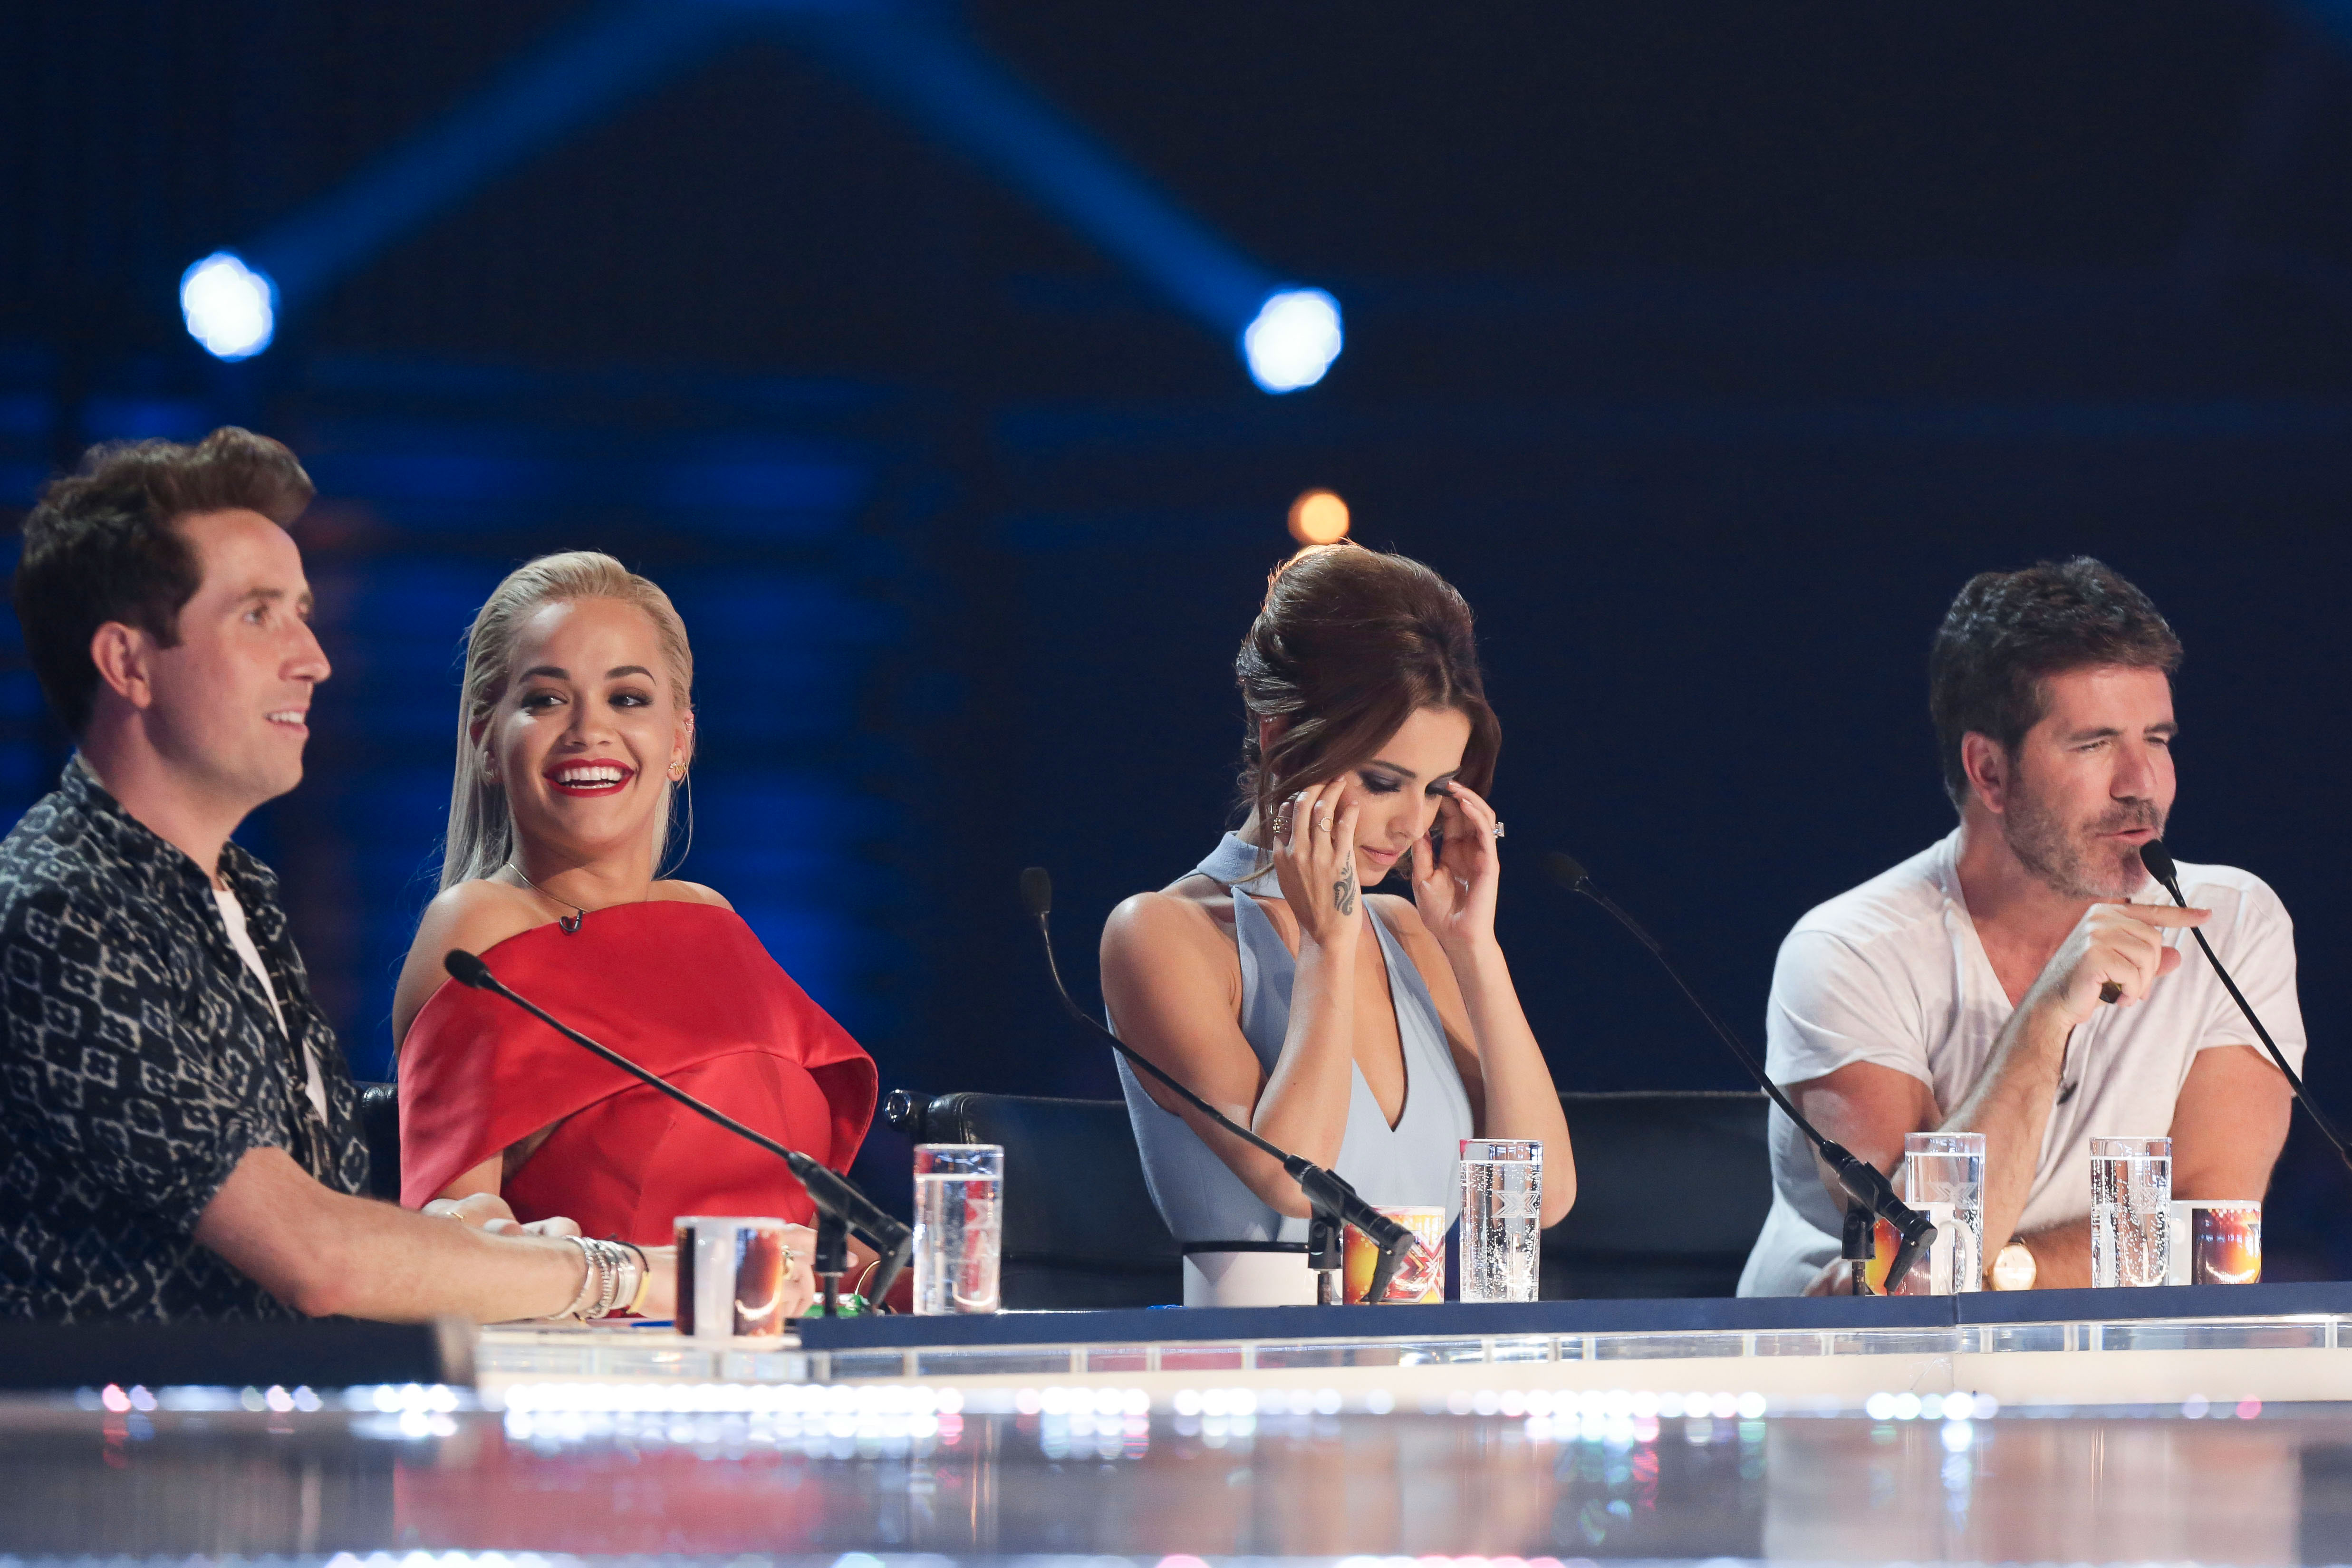 Will Cheryl Fernandez-Versini have to pick between a brother and sister on The X Factor?